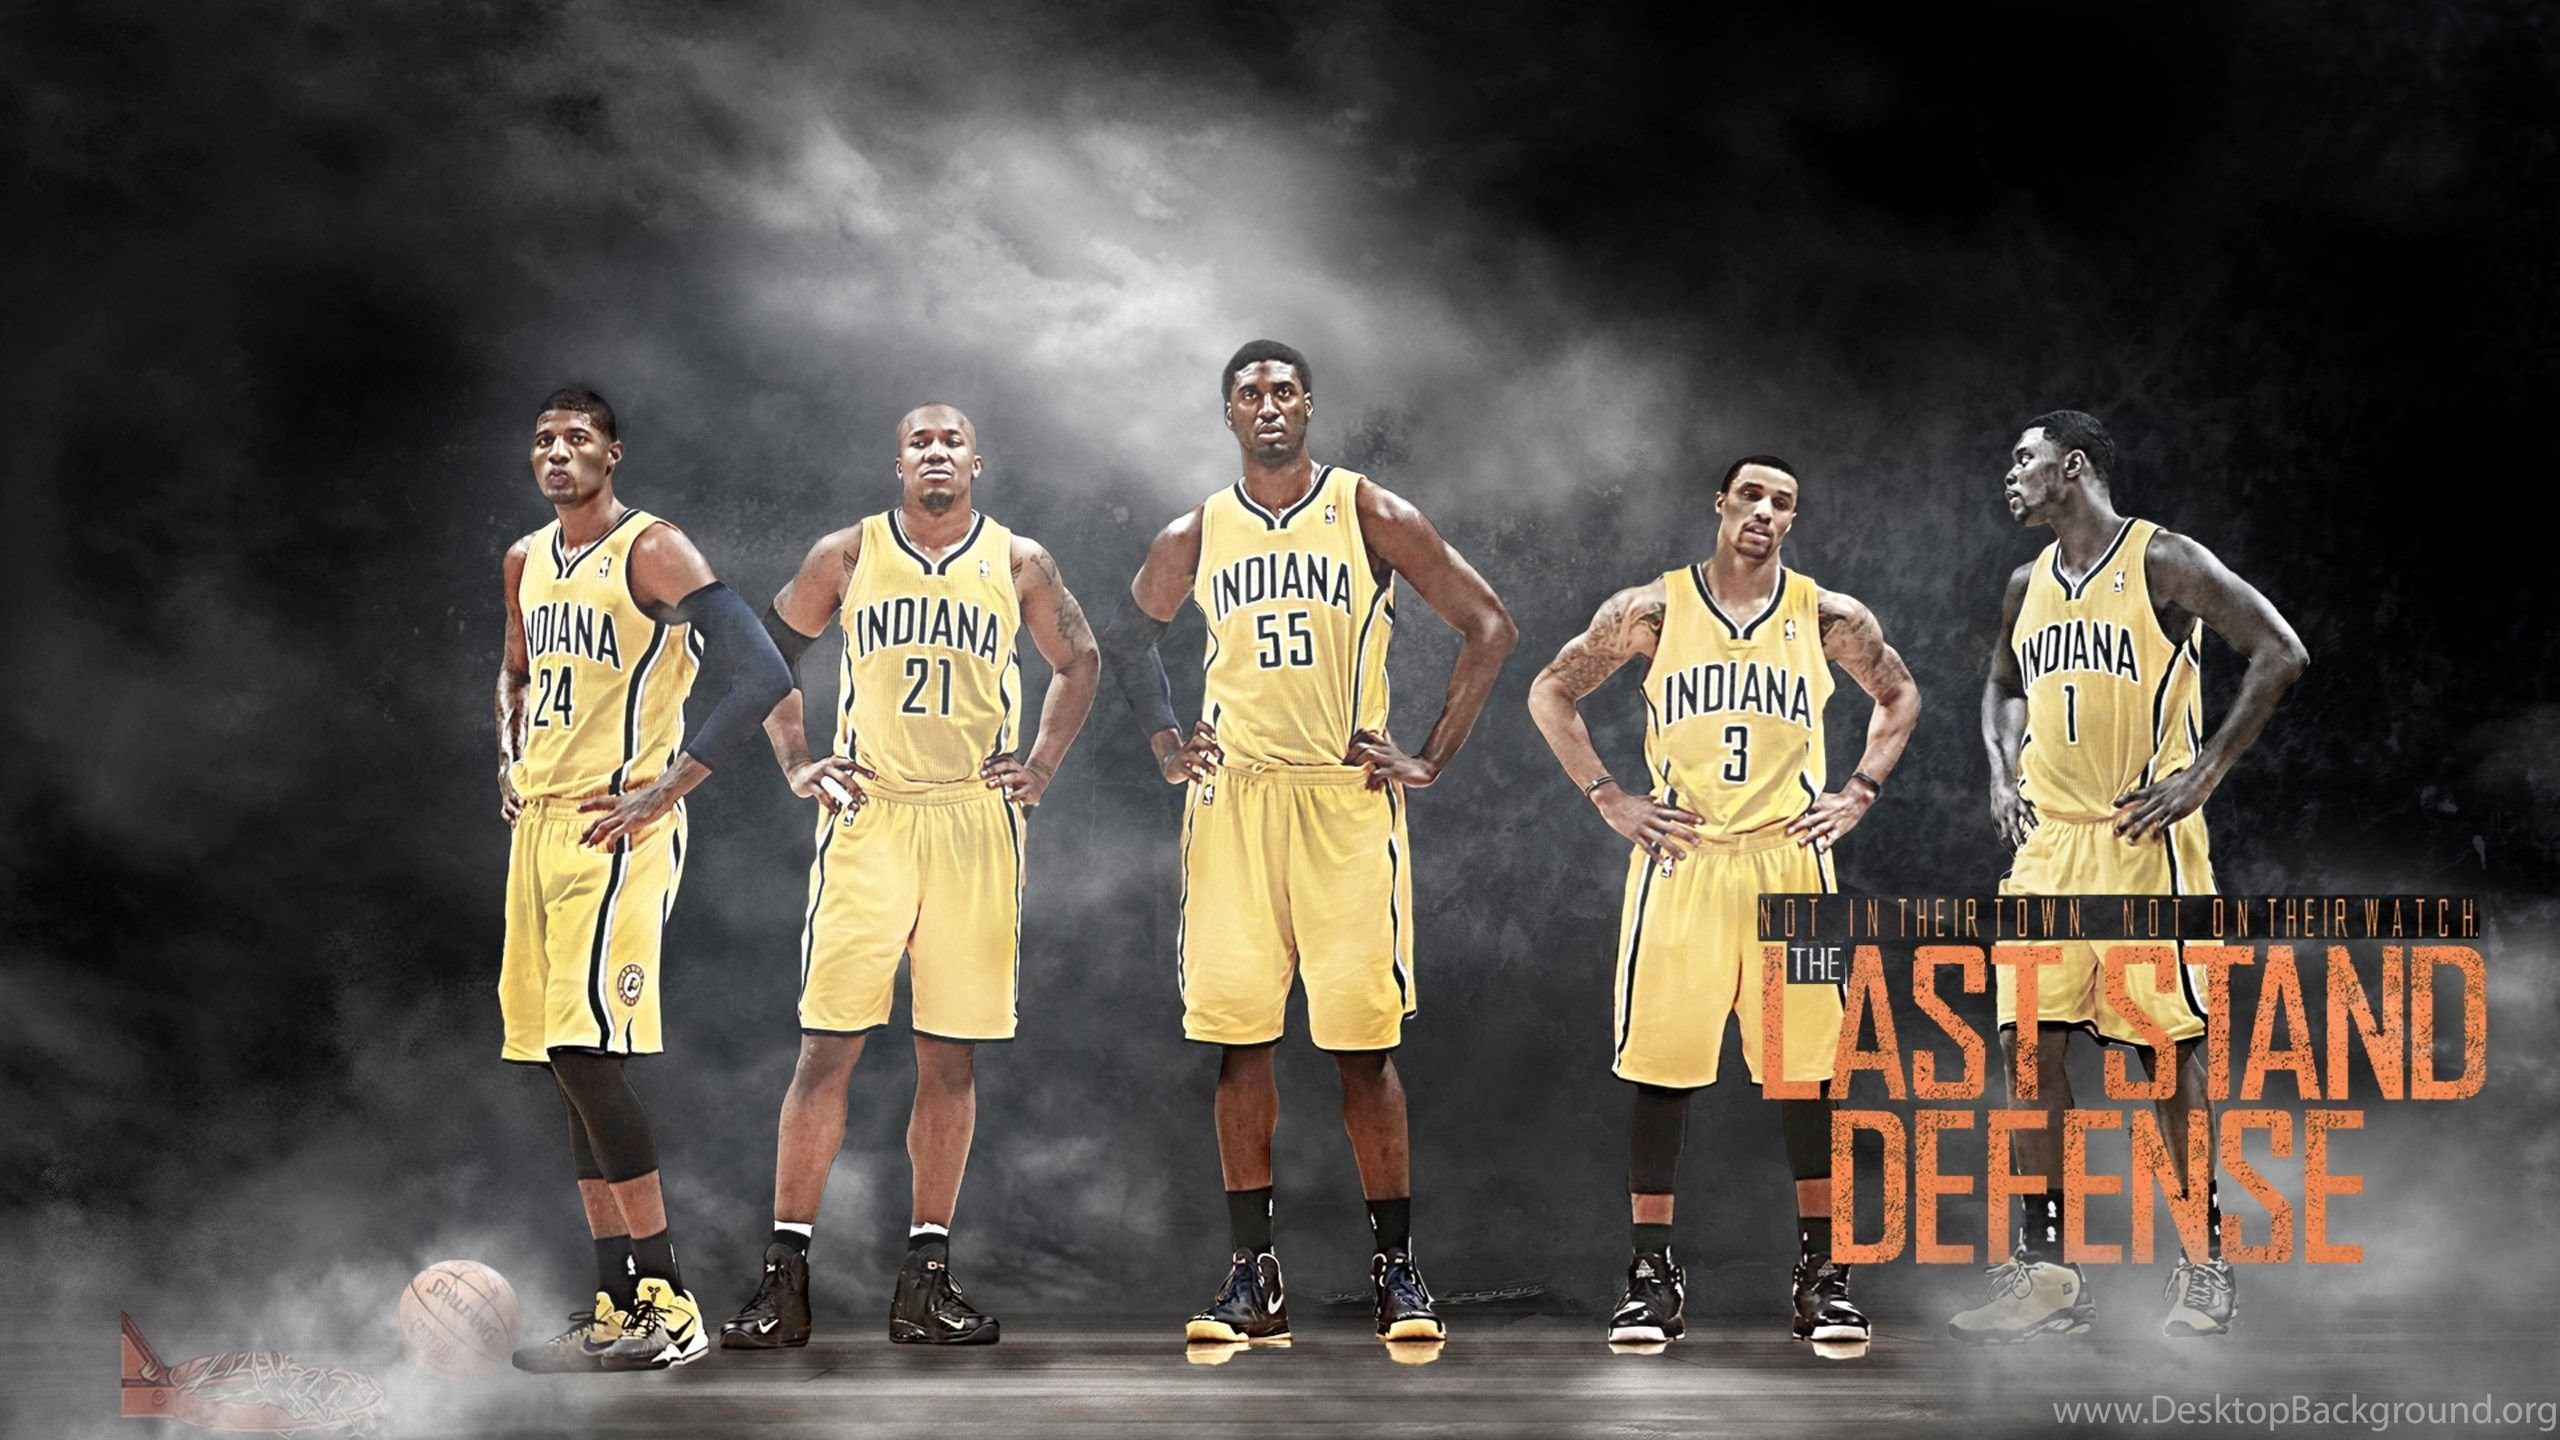 Nba indiana pacers team player wallpapers hd free desktop netbook voltagebd Choice Image